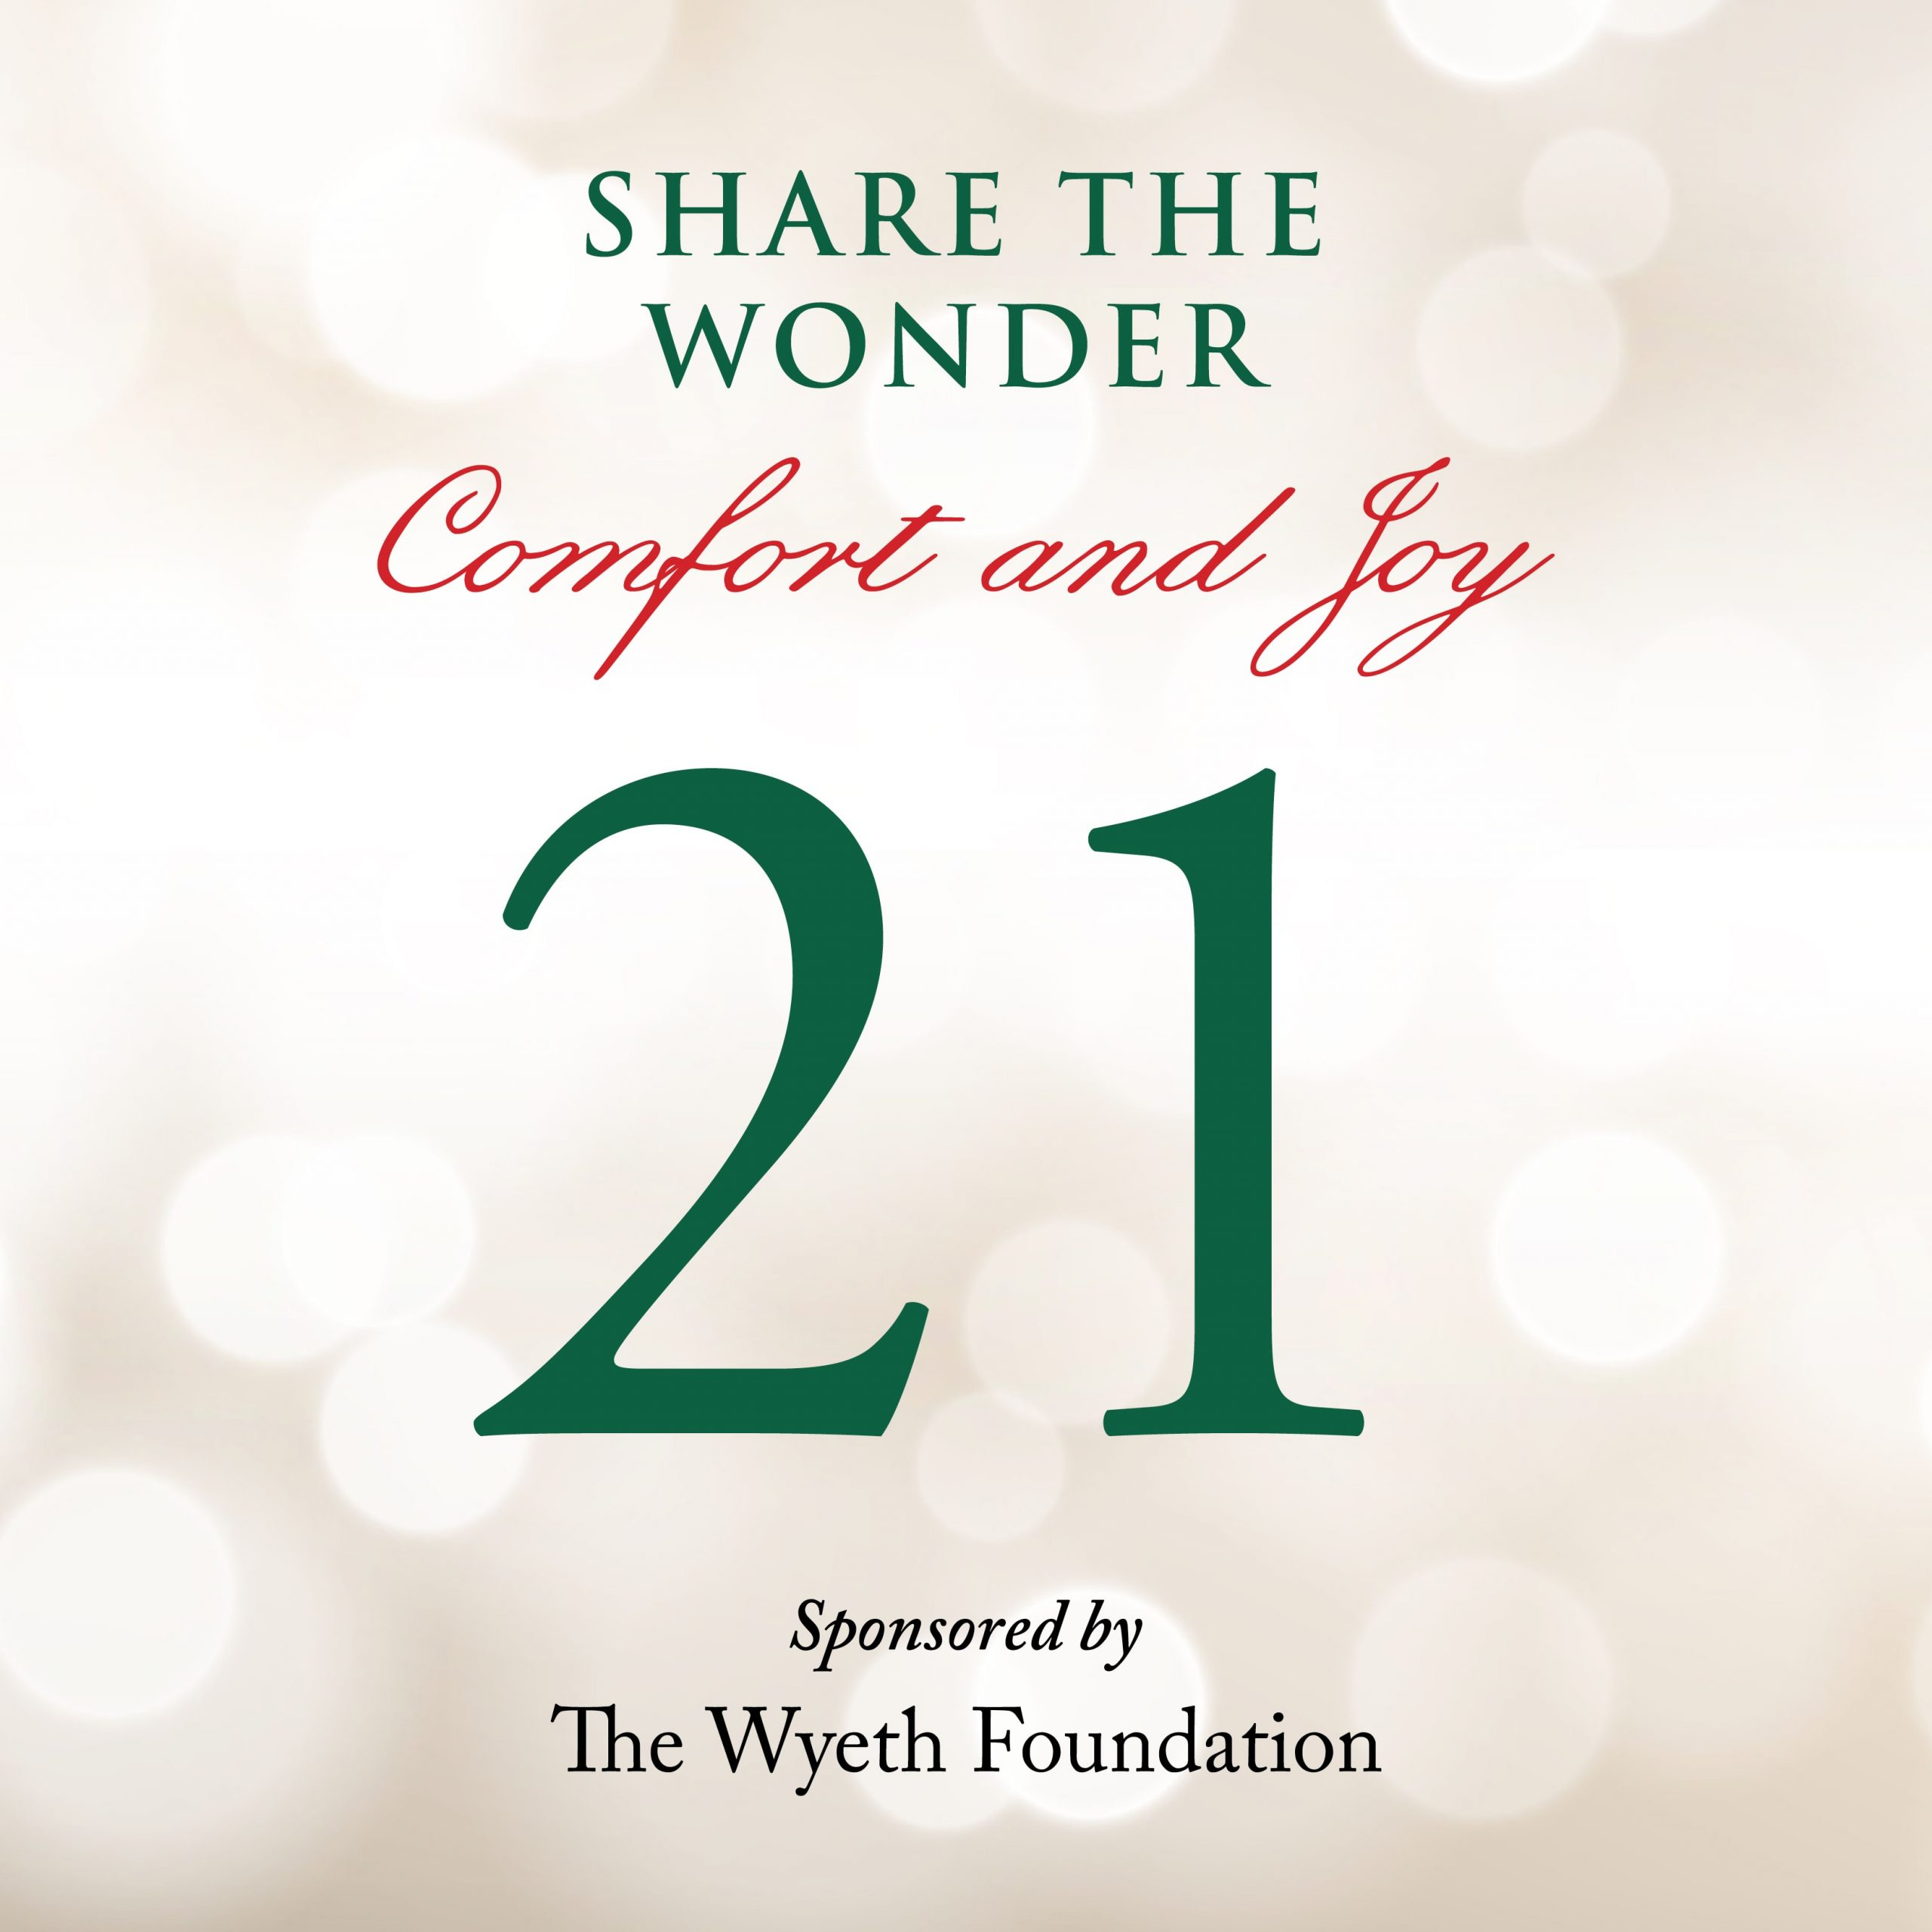 Day 21 of Share the Wonder: December 18